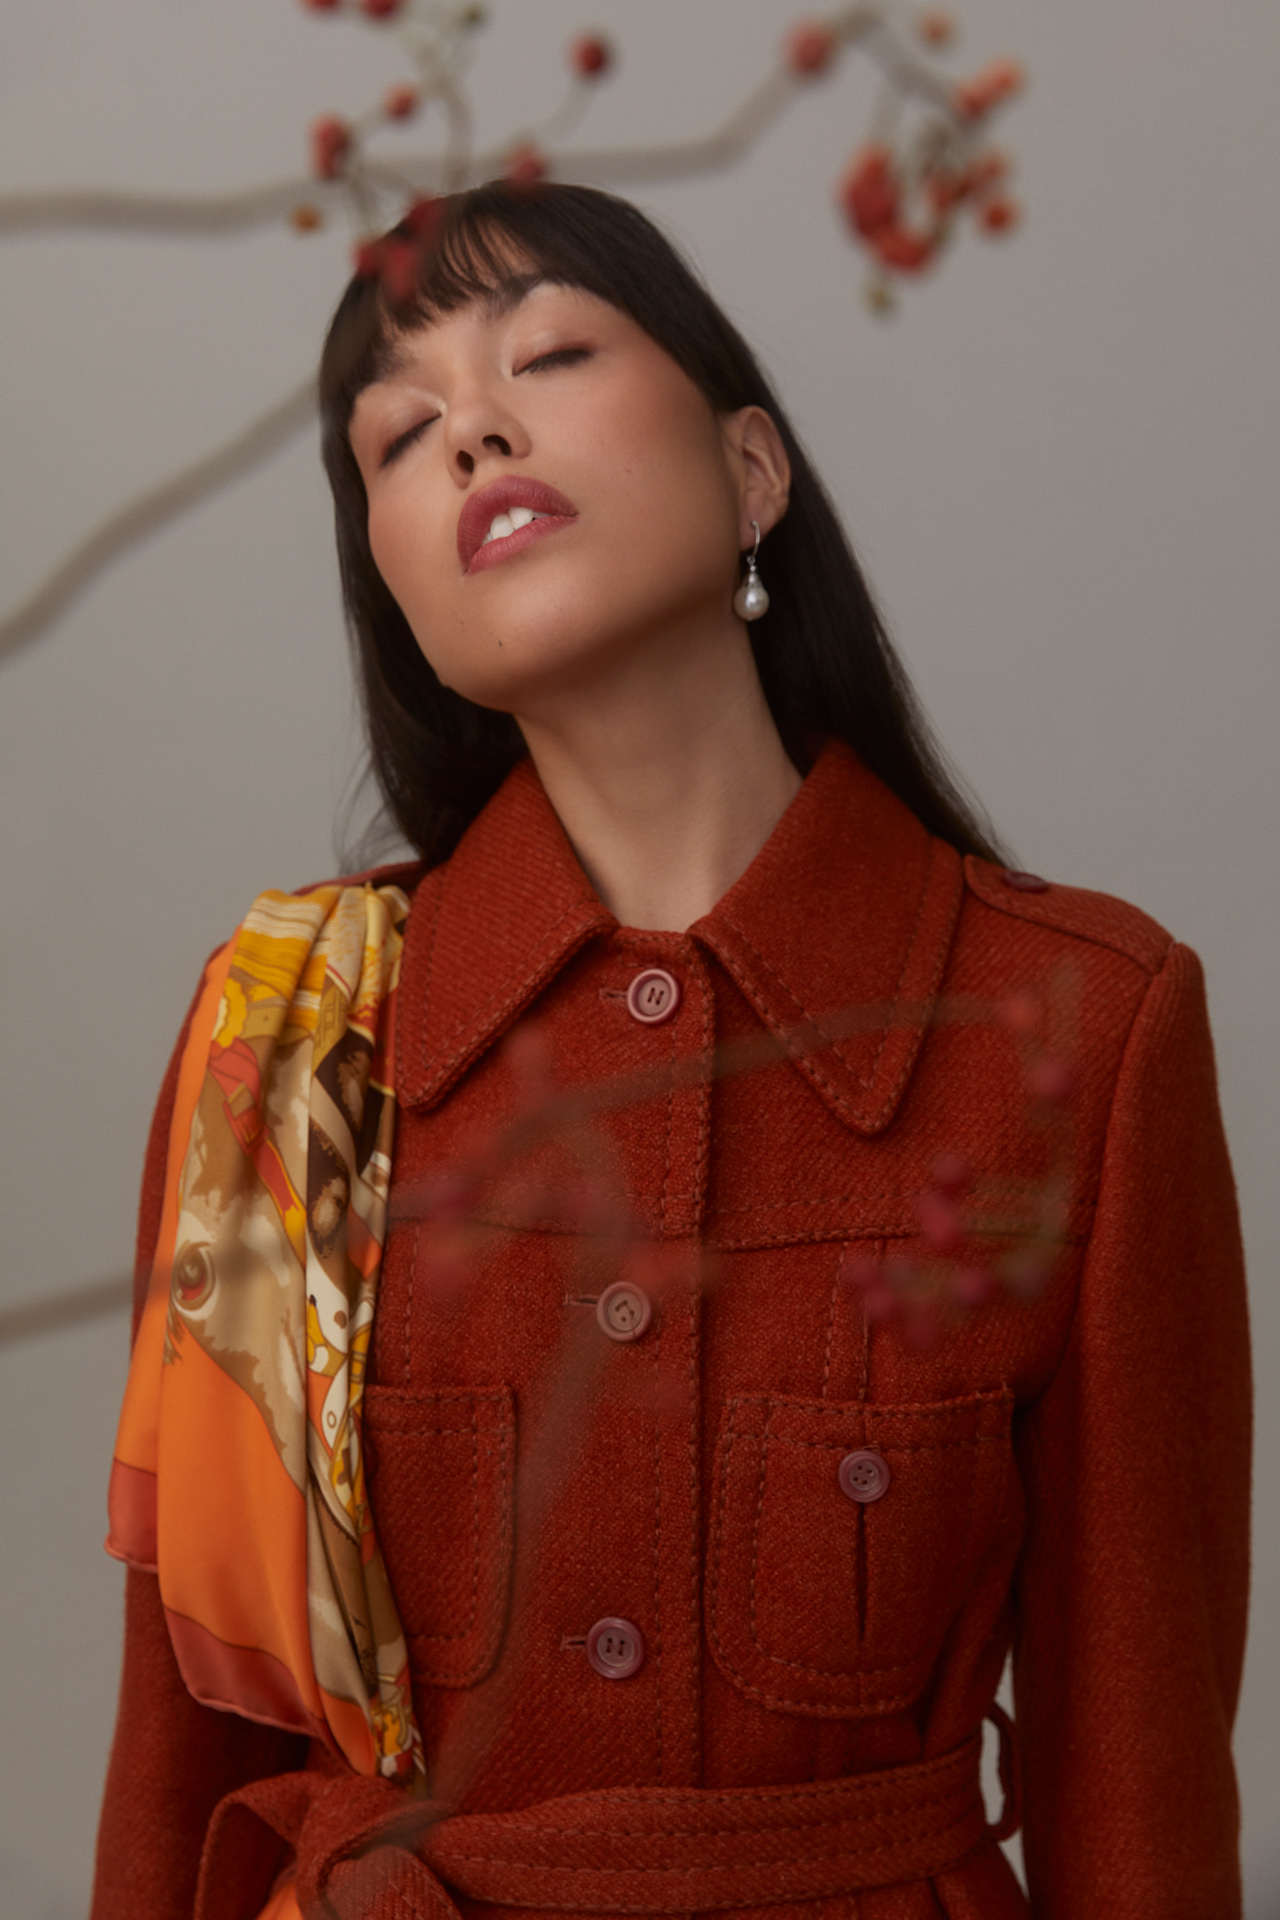 female model wearing red trench coat standing eyes closed with blurred branches of red fruits in the foreground photographed by Kelly Jacob for LEV